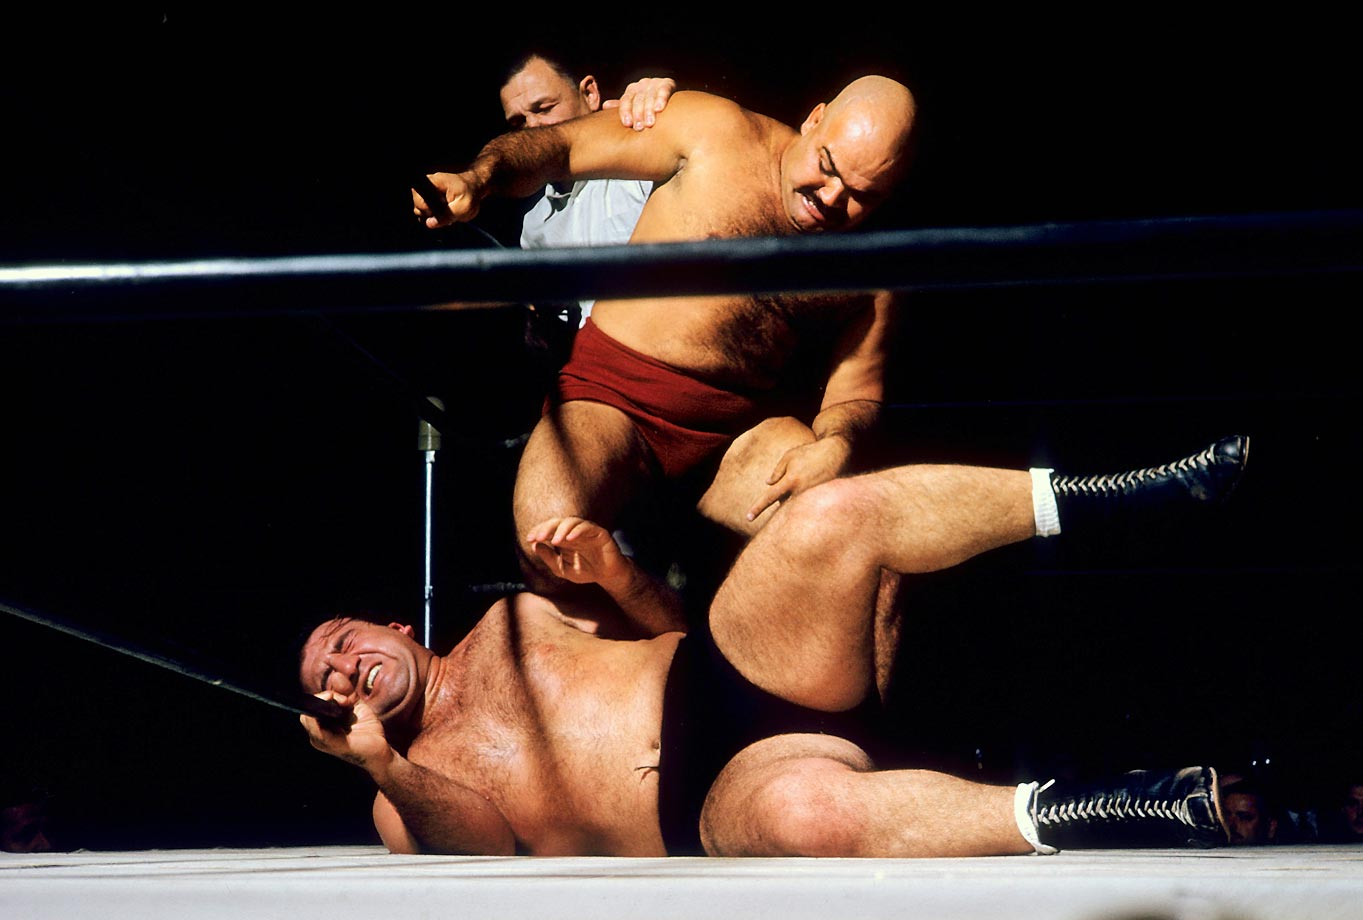 Kubla Khan (red) giving Mike DeBiasie a knee drop.